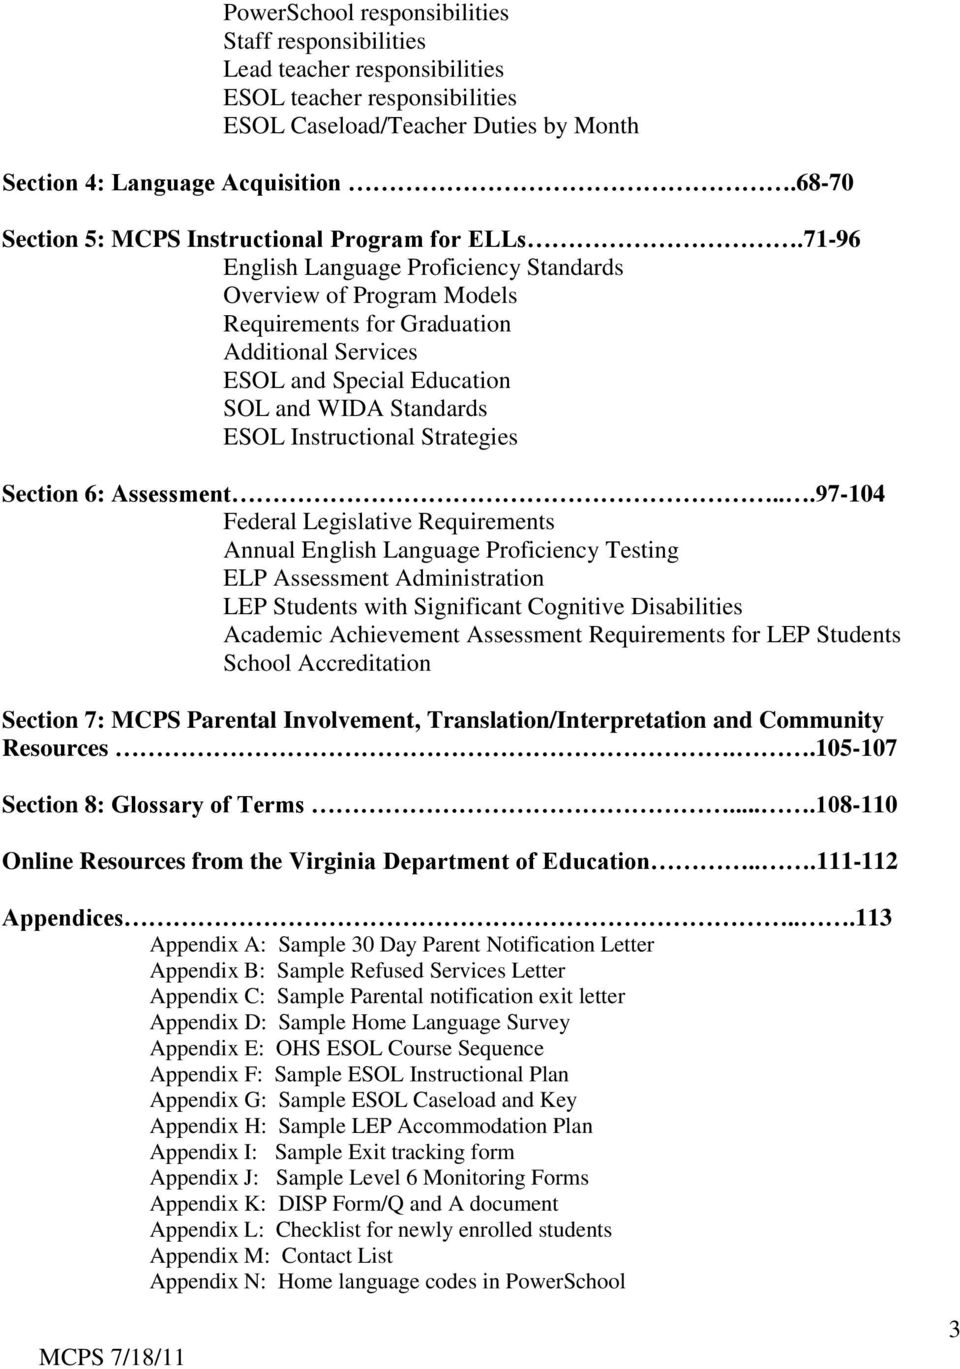 71-96 English Language Proficiency Standards Overview of Program Models Requirements for Graduation Additional Services ESOL and Special Education SOL and WIDA Standards ESOL Instructional Strategies